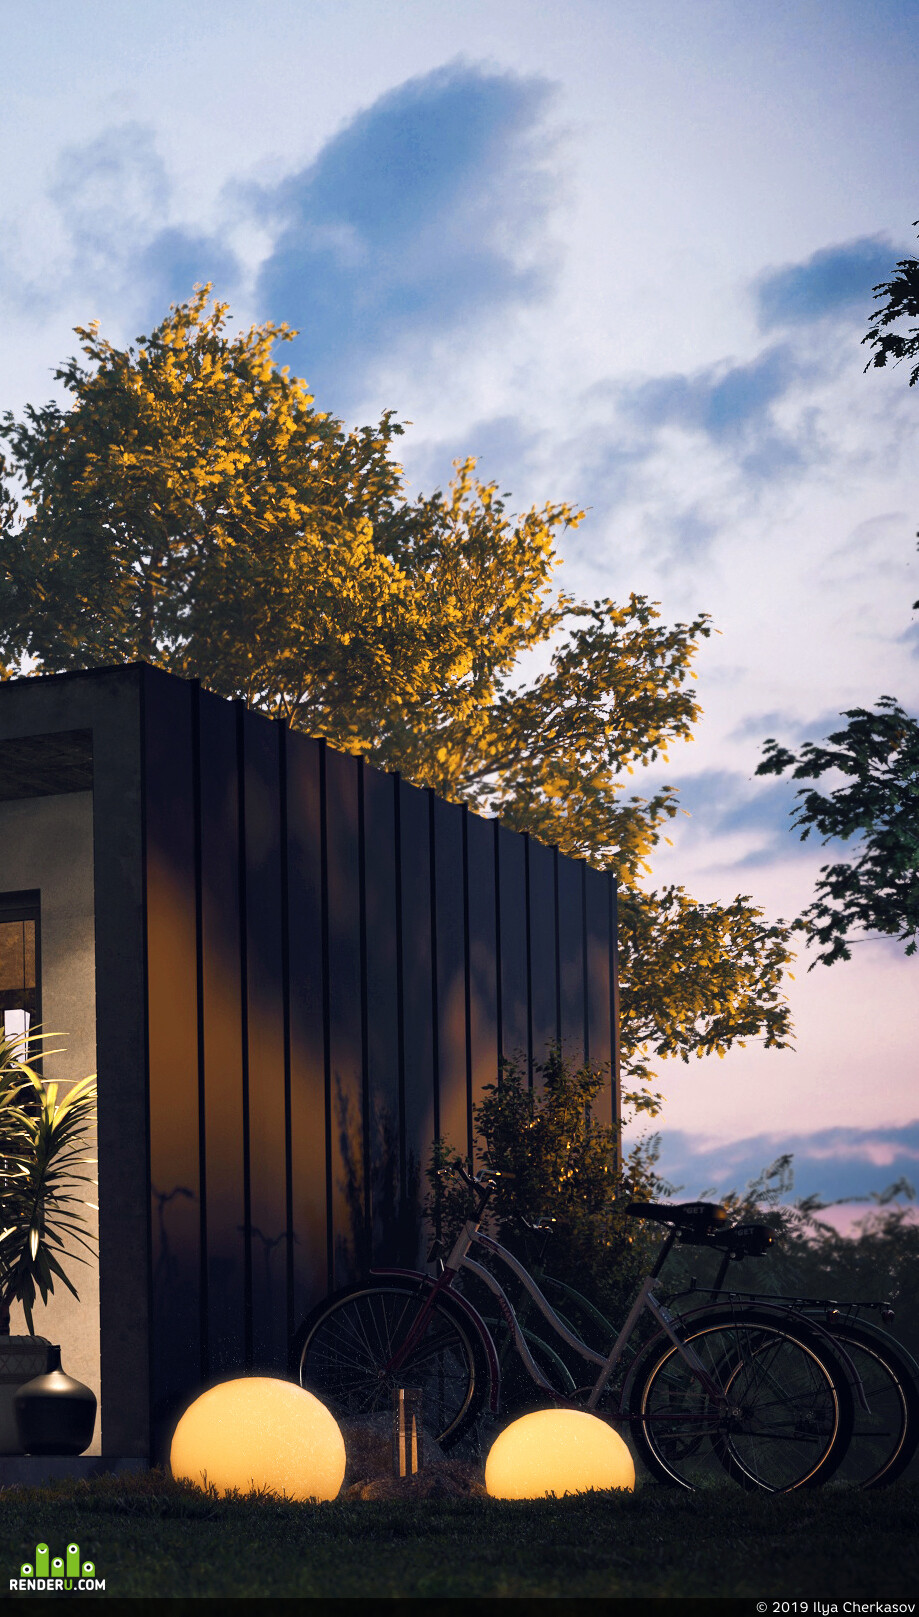 house, private house, modern house, People, Exterior, evening, forest, house in the forest, biker, Car / motorcycle